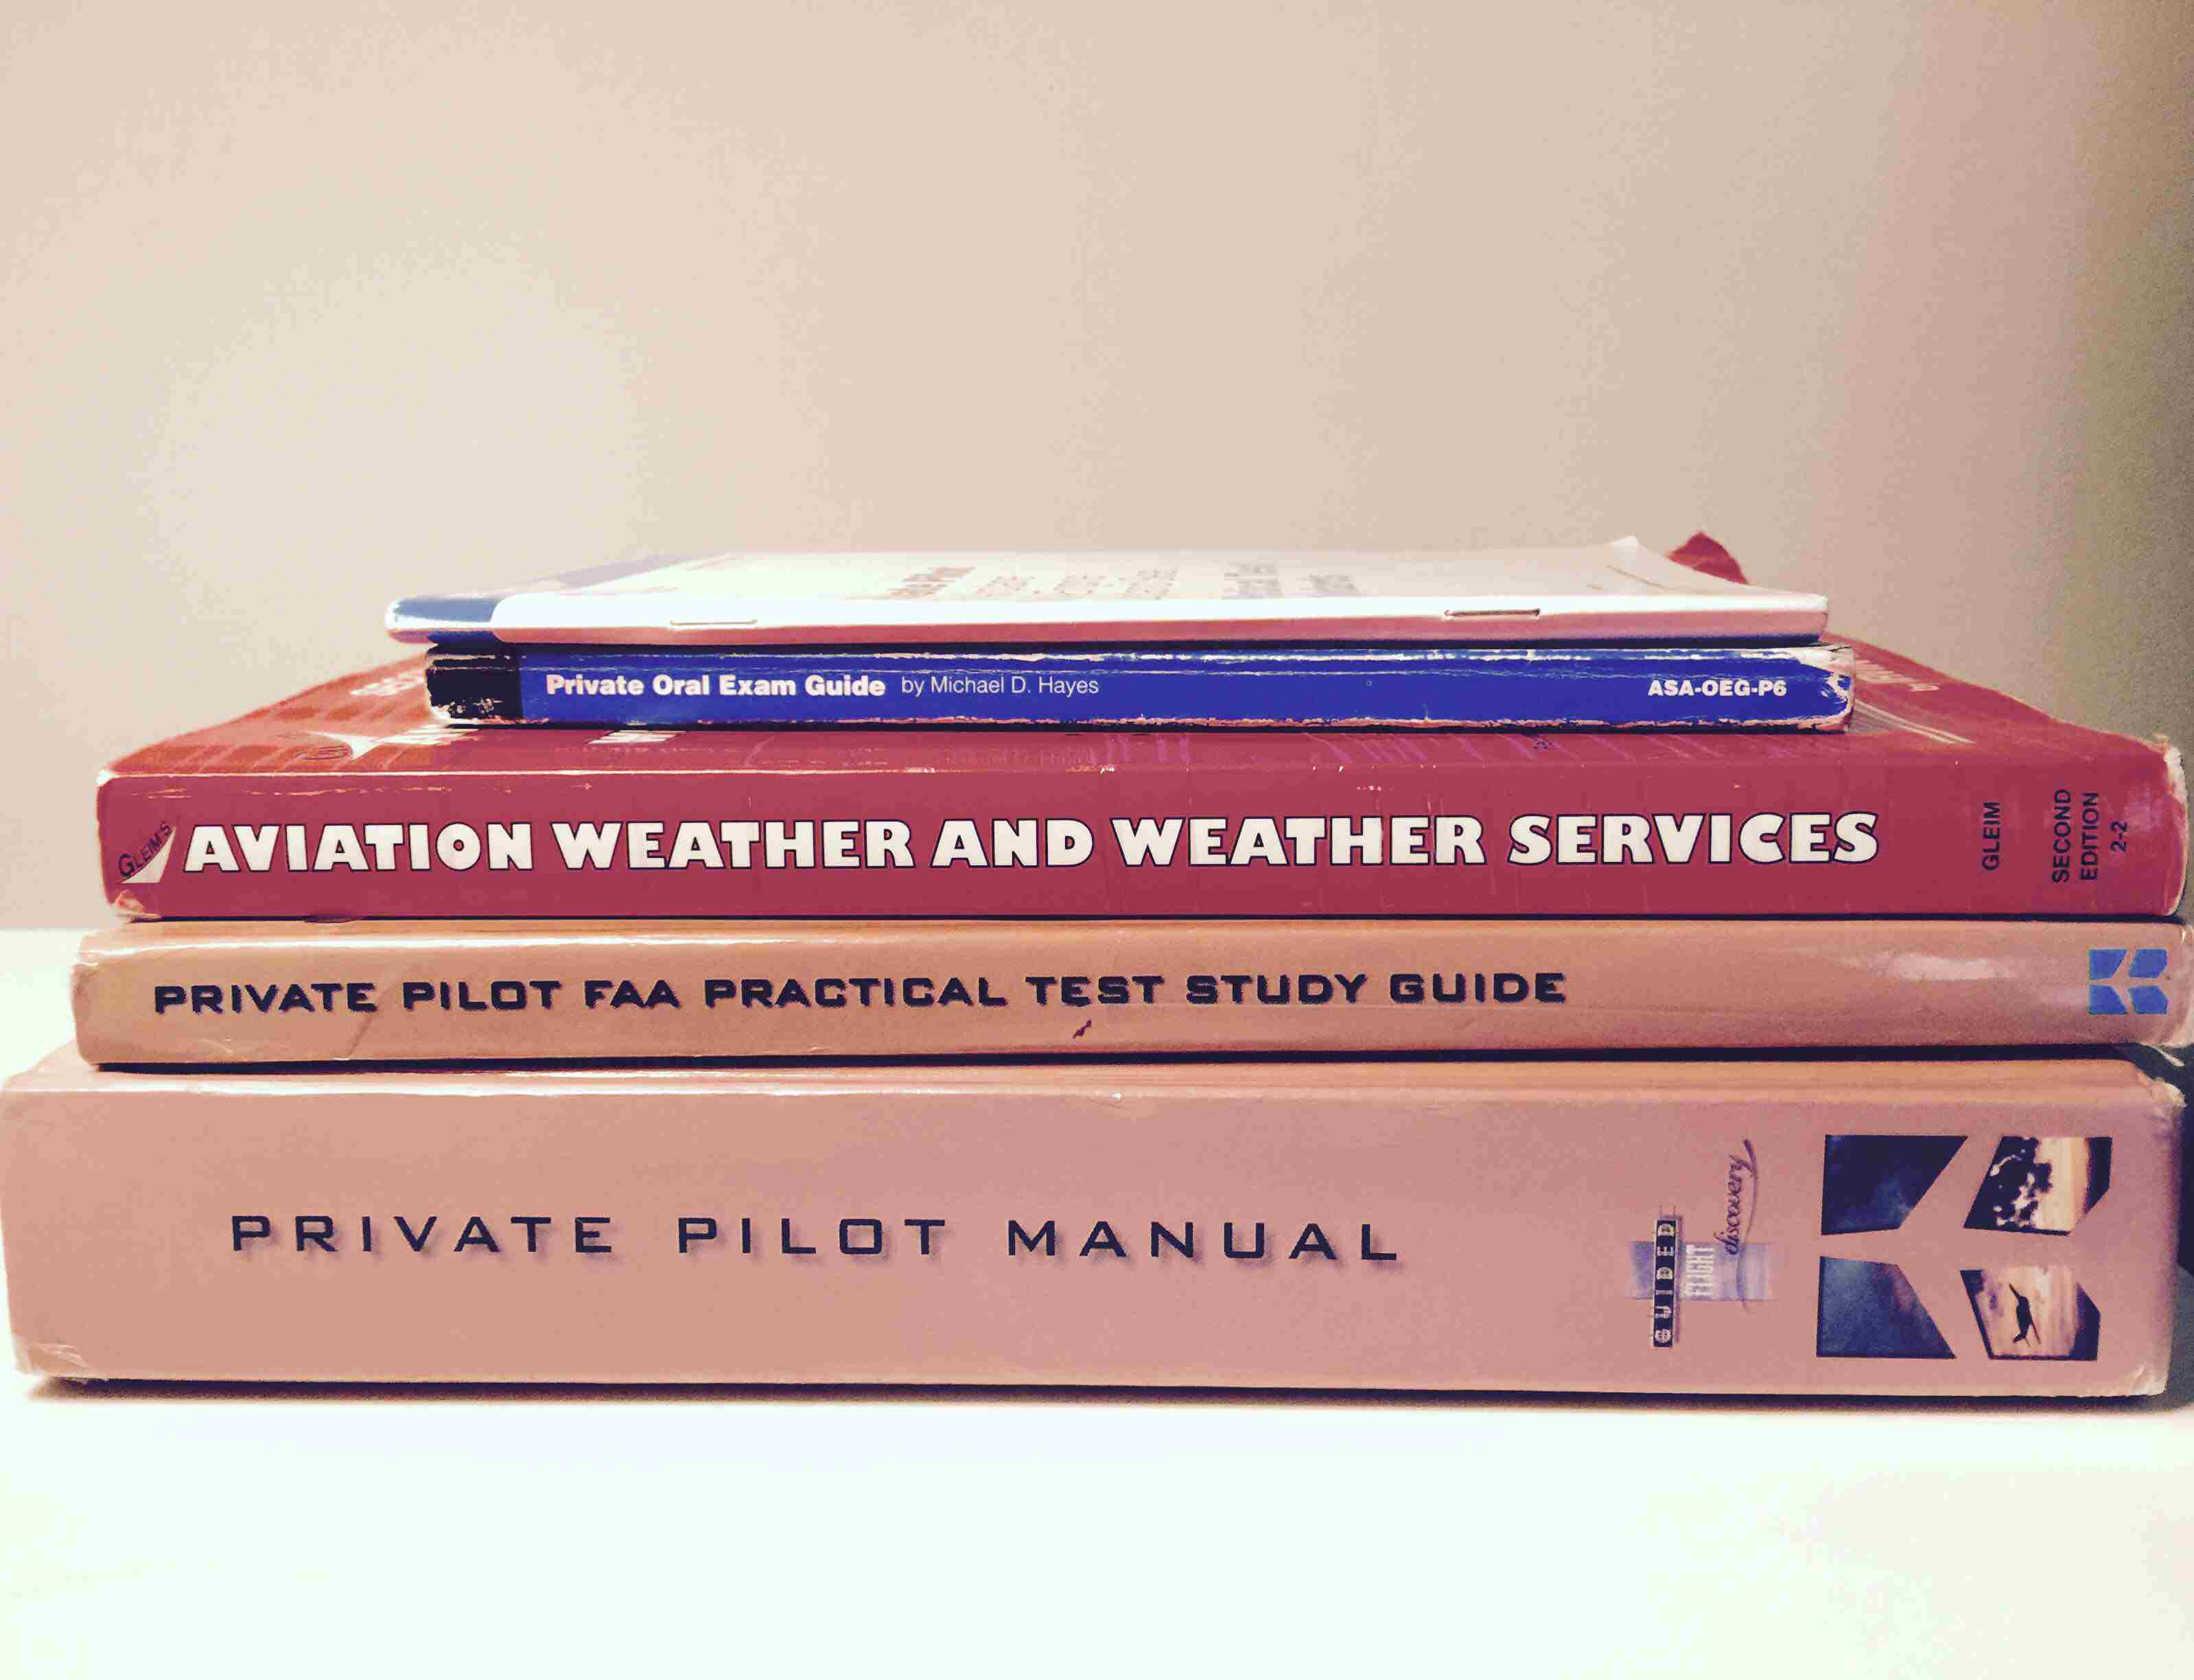 Books for Private Pilot Flight Training